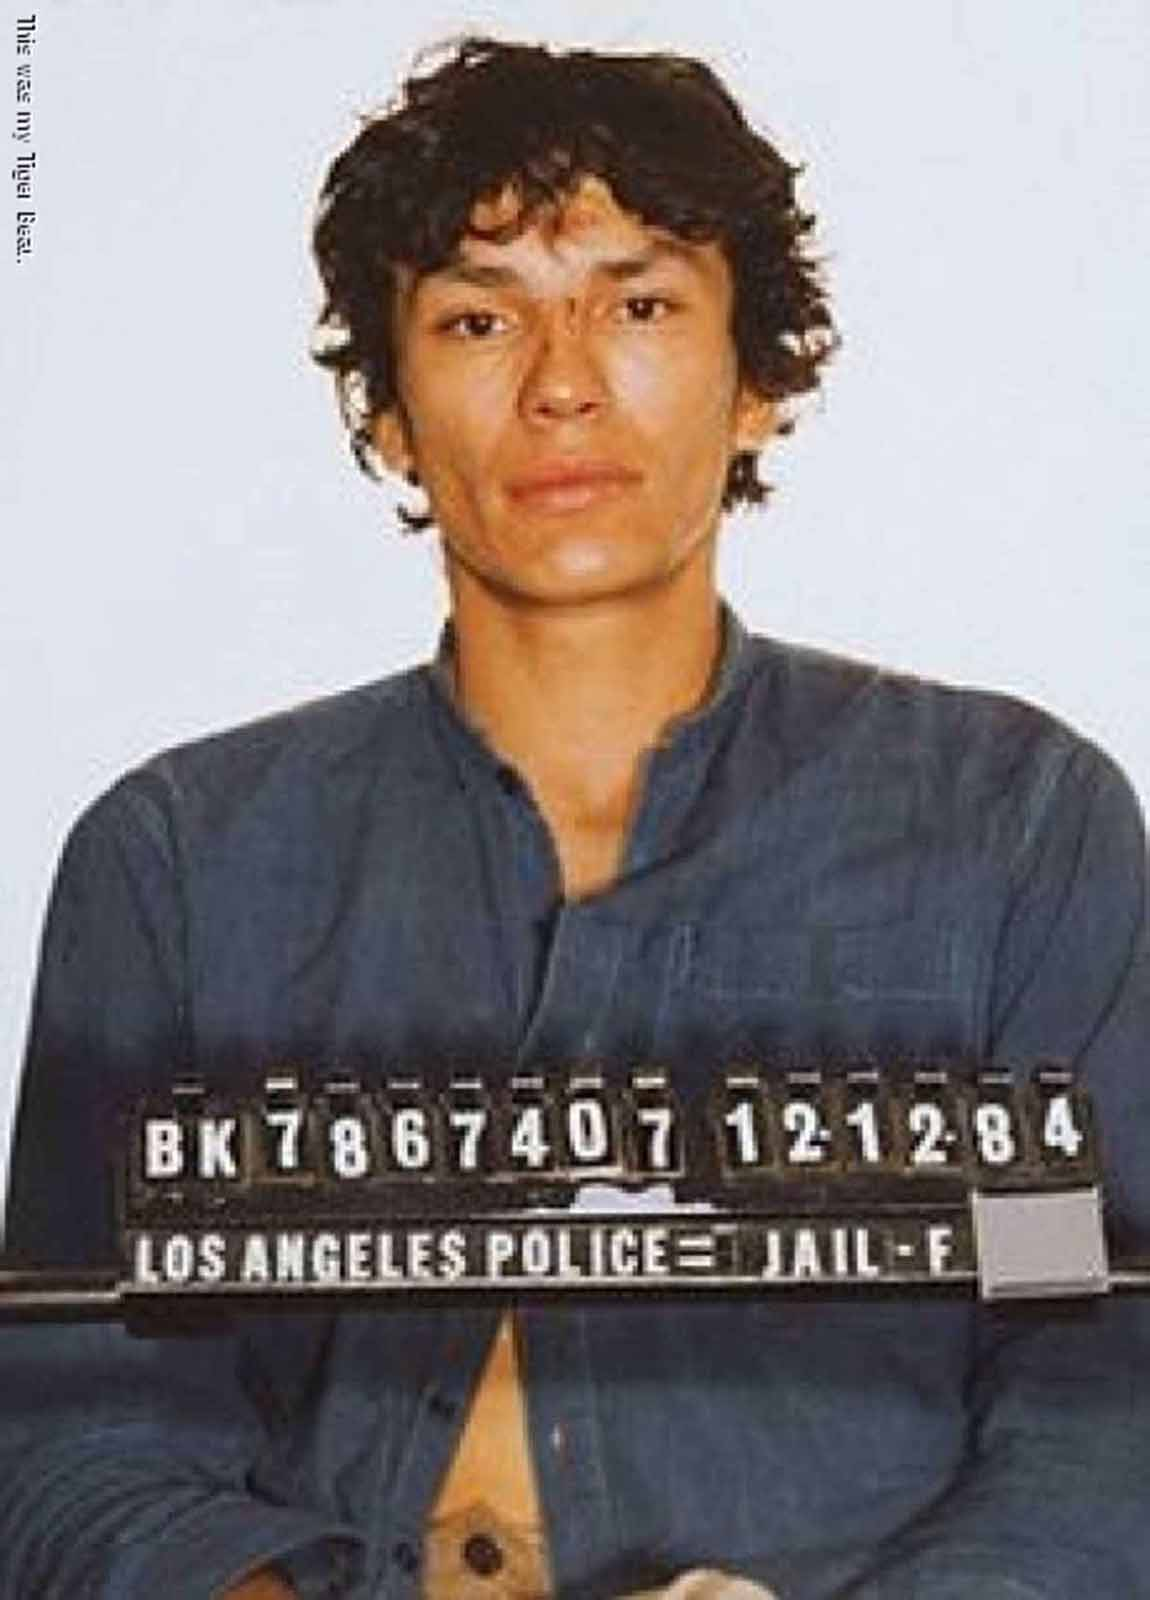 The Night Stalker scared LA and San Francisco residents for nearly two years before being caught by police. Here's the story of Richard Ramirez.